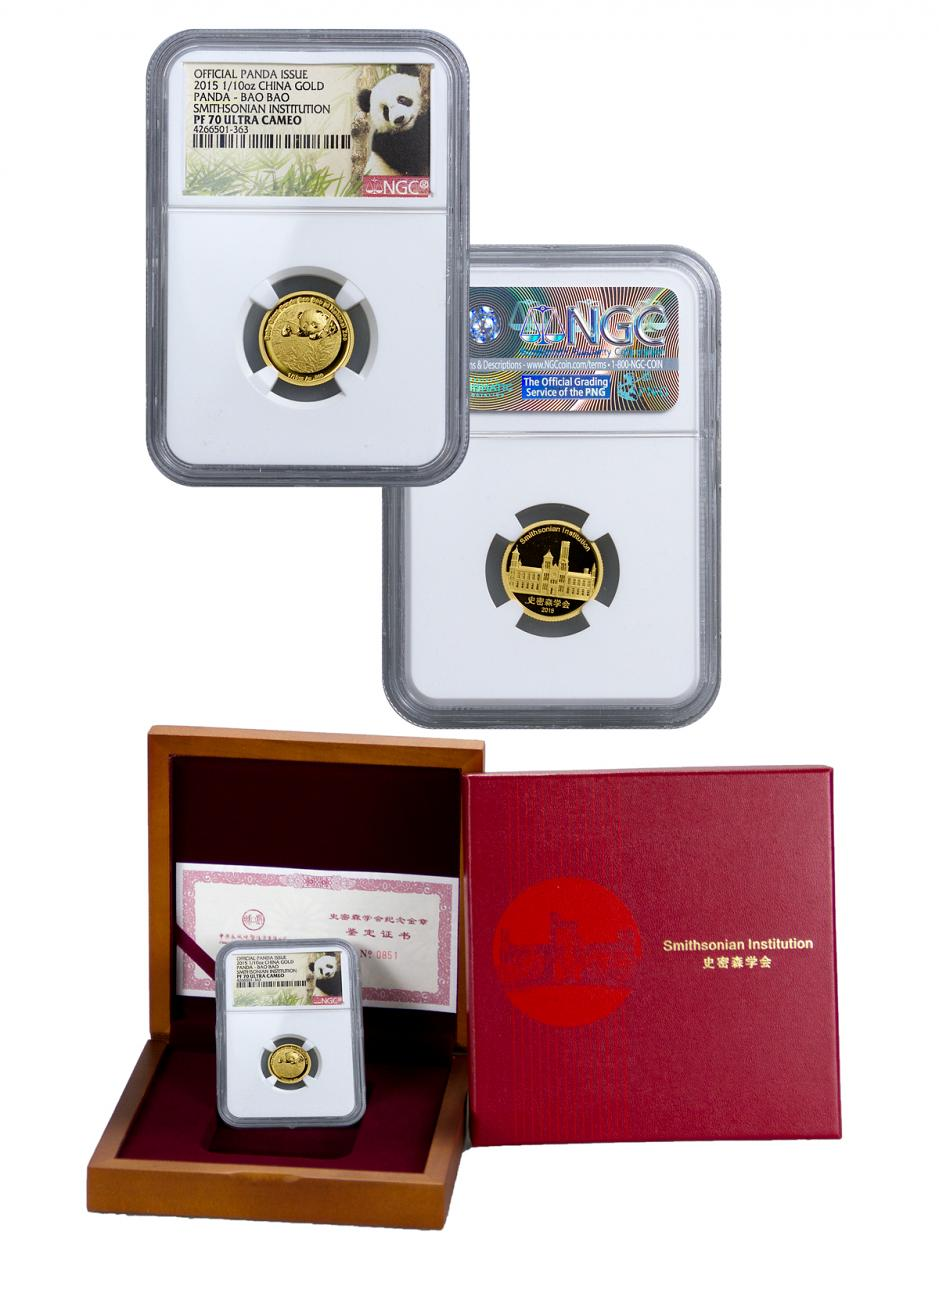 2015 China Bao Bao Smithsonian Institution Official Mint Medal 1/10 oz Gold Proof Medal NGC PF70 UC Panda Label